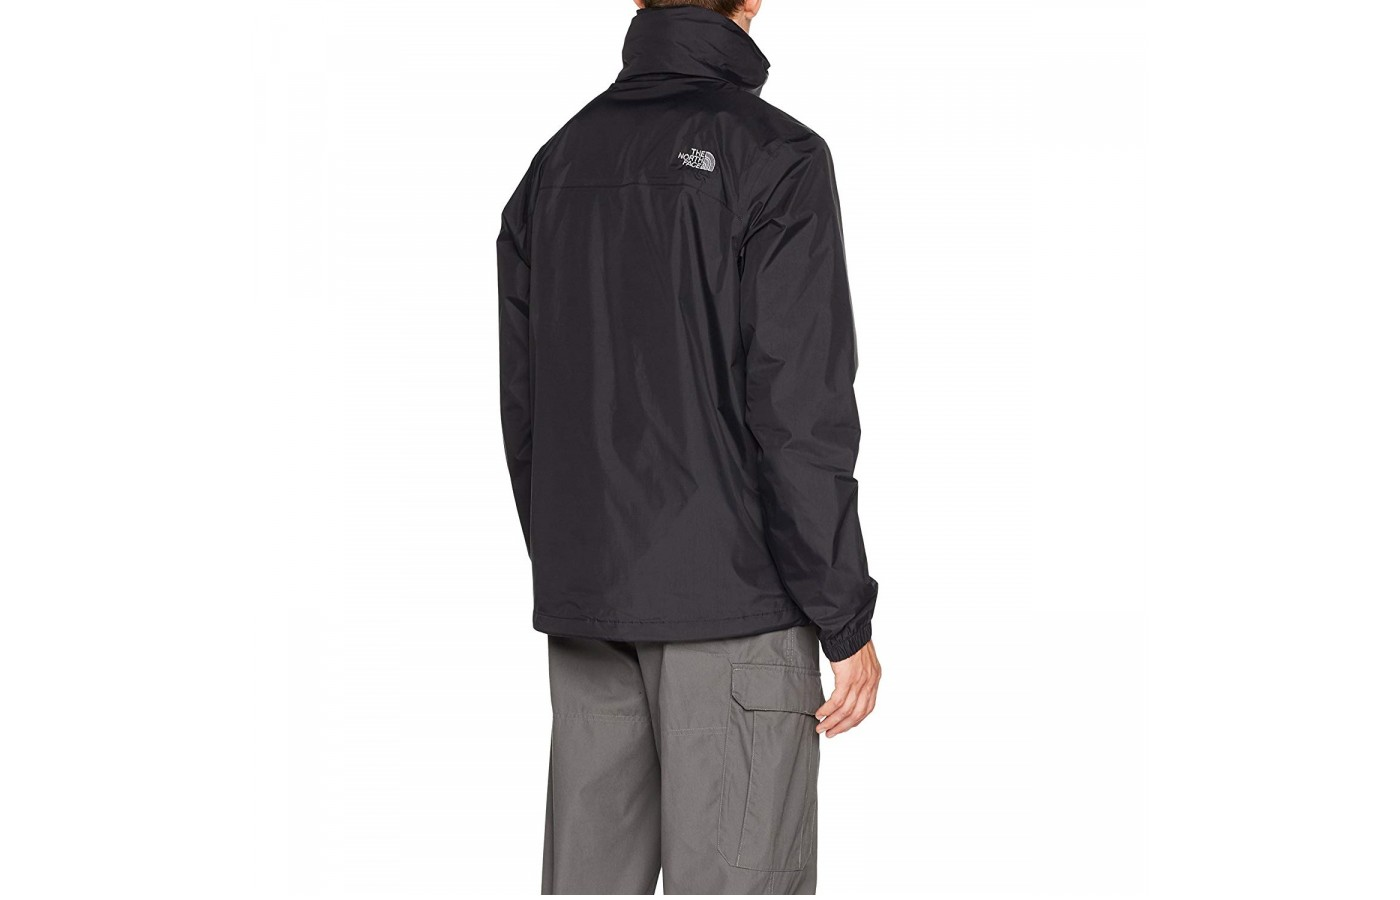 The North Face Resolve 2 uses polyurethane in order to protect the wearer from rain and moisture.